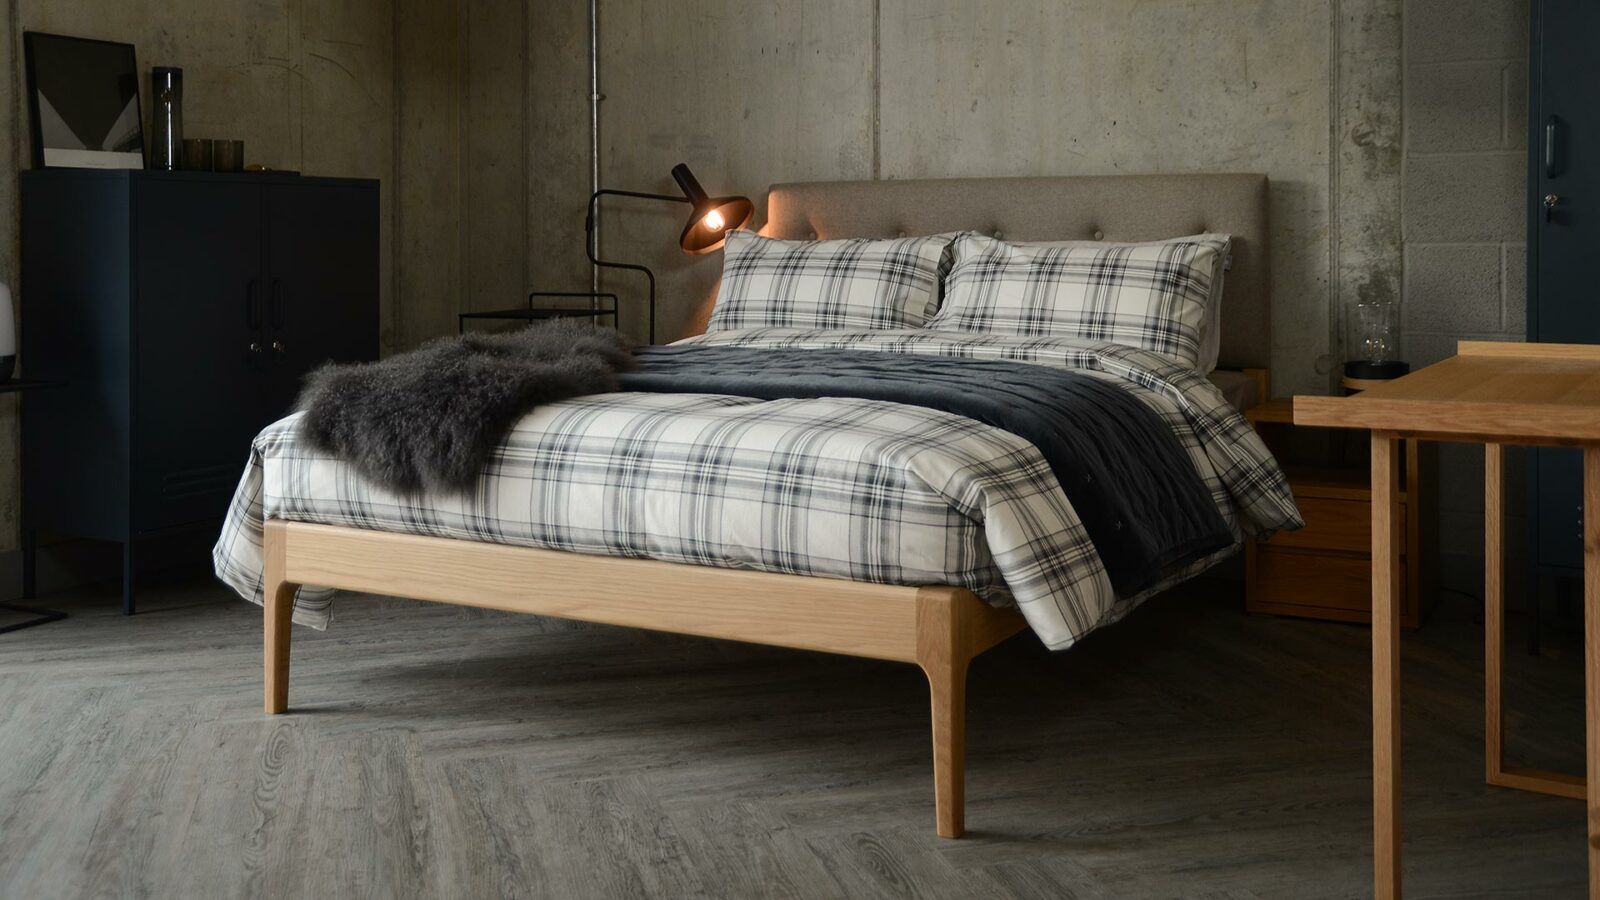 Scandinavian style bedroom with oak Bloomsbury bed and cosy bedding